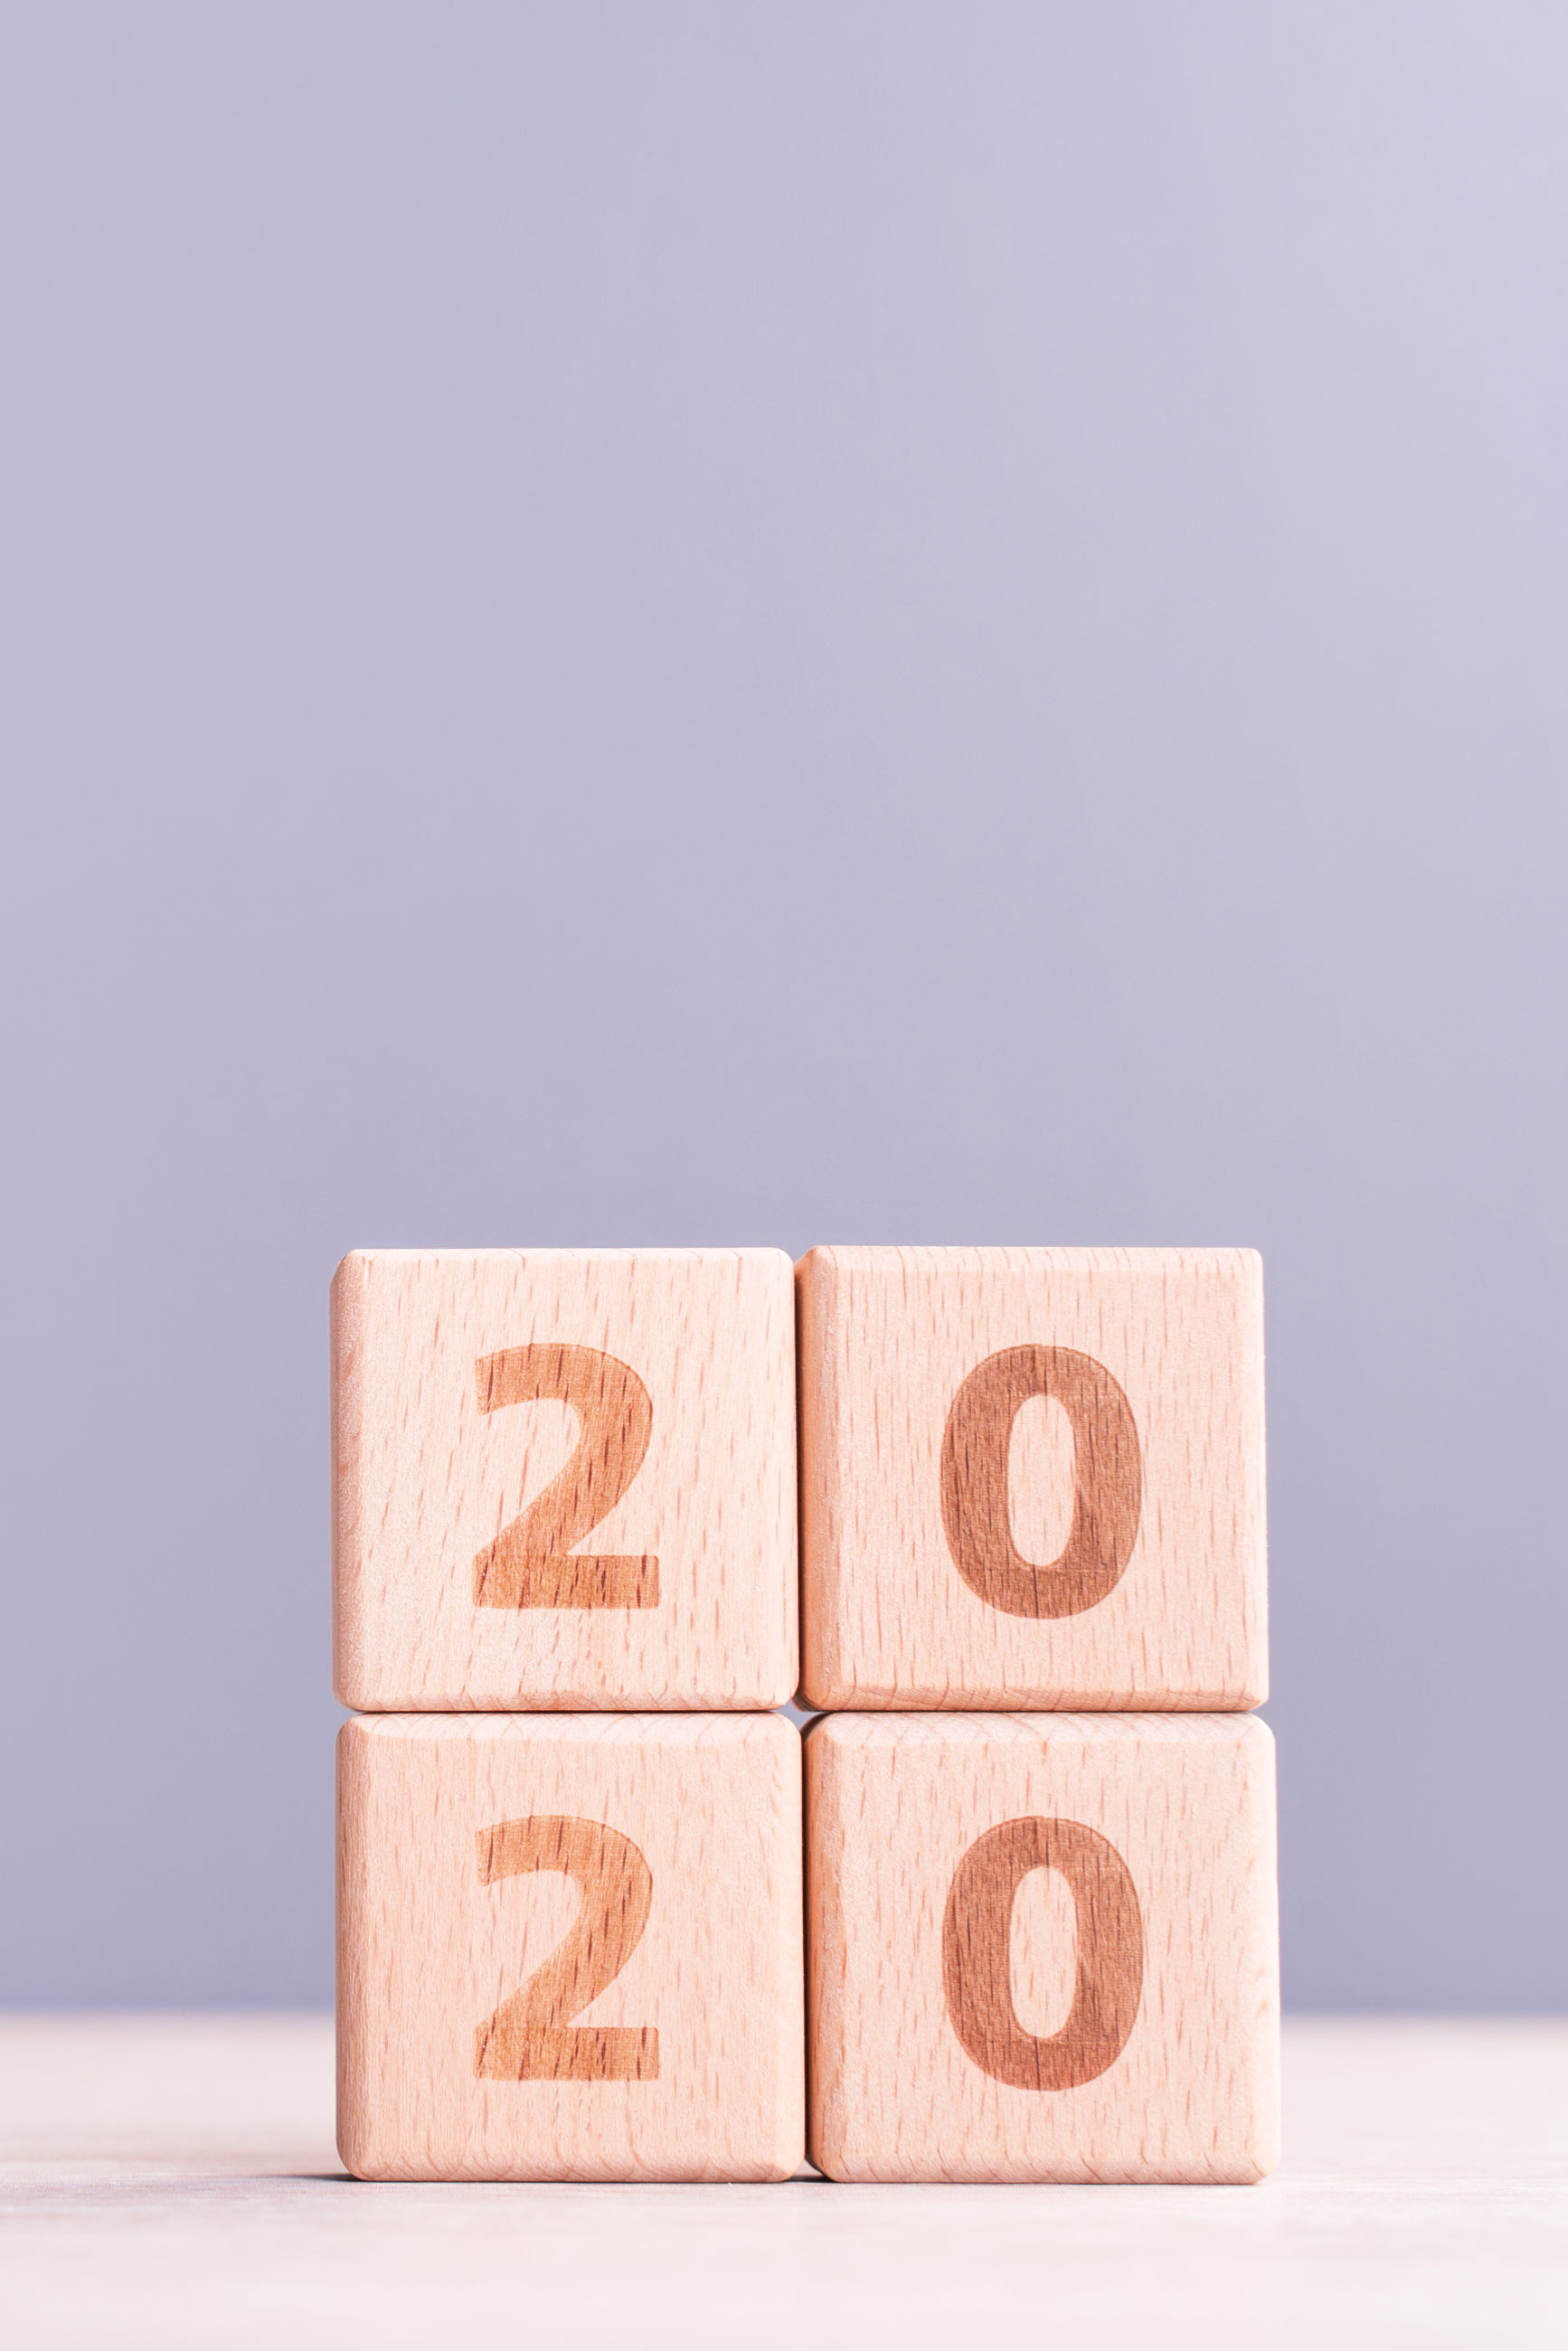 Close-up of toy blocks with 2020 number against gray background